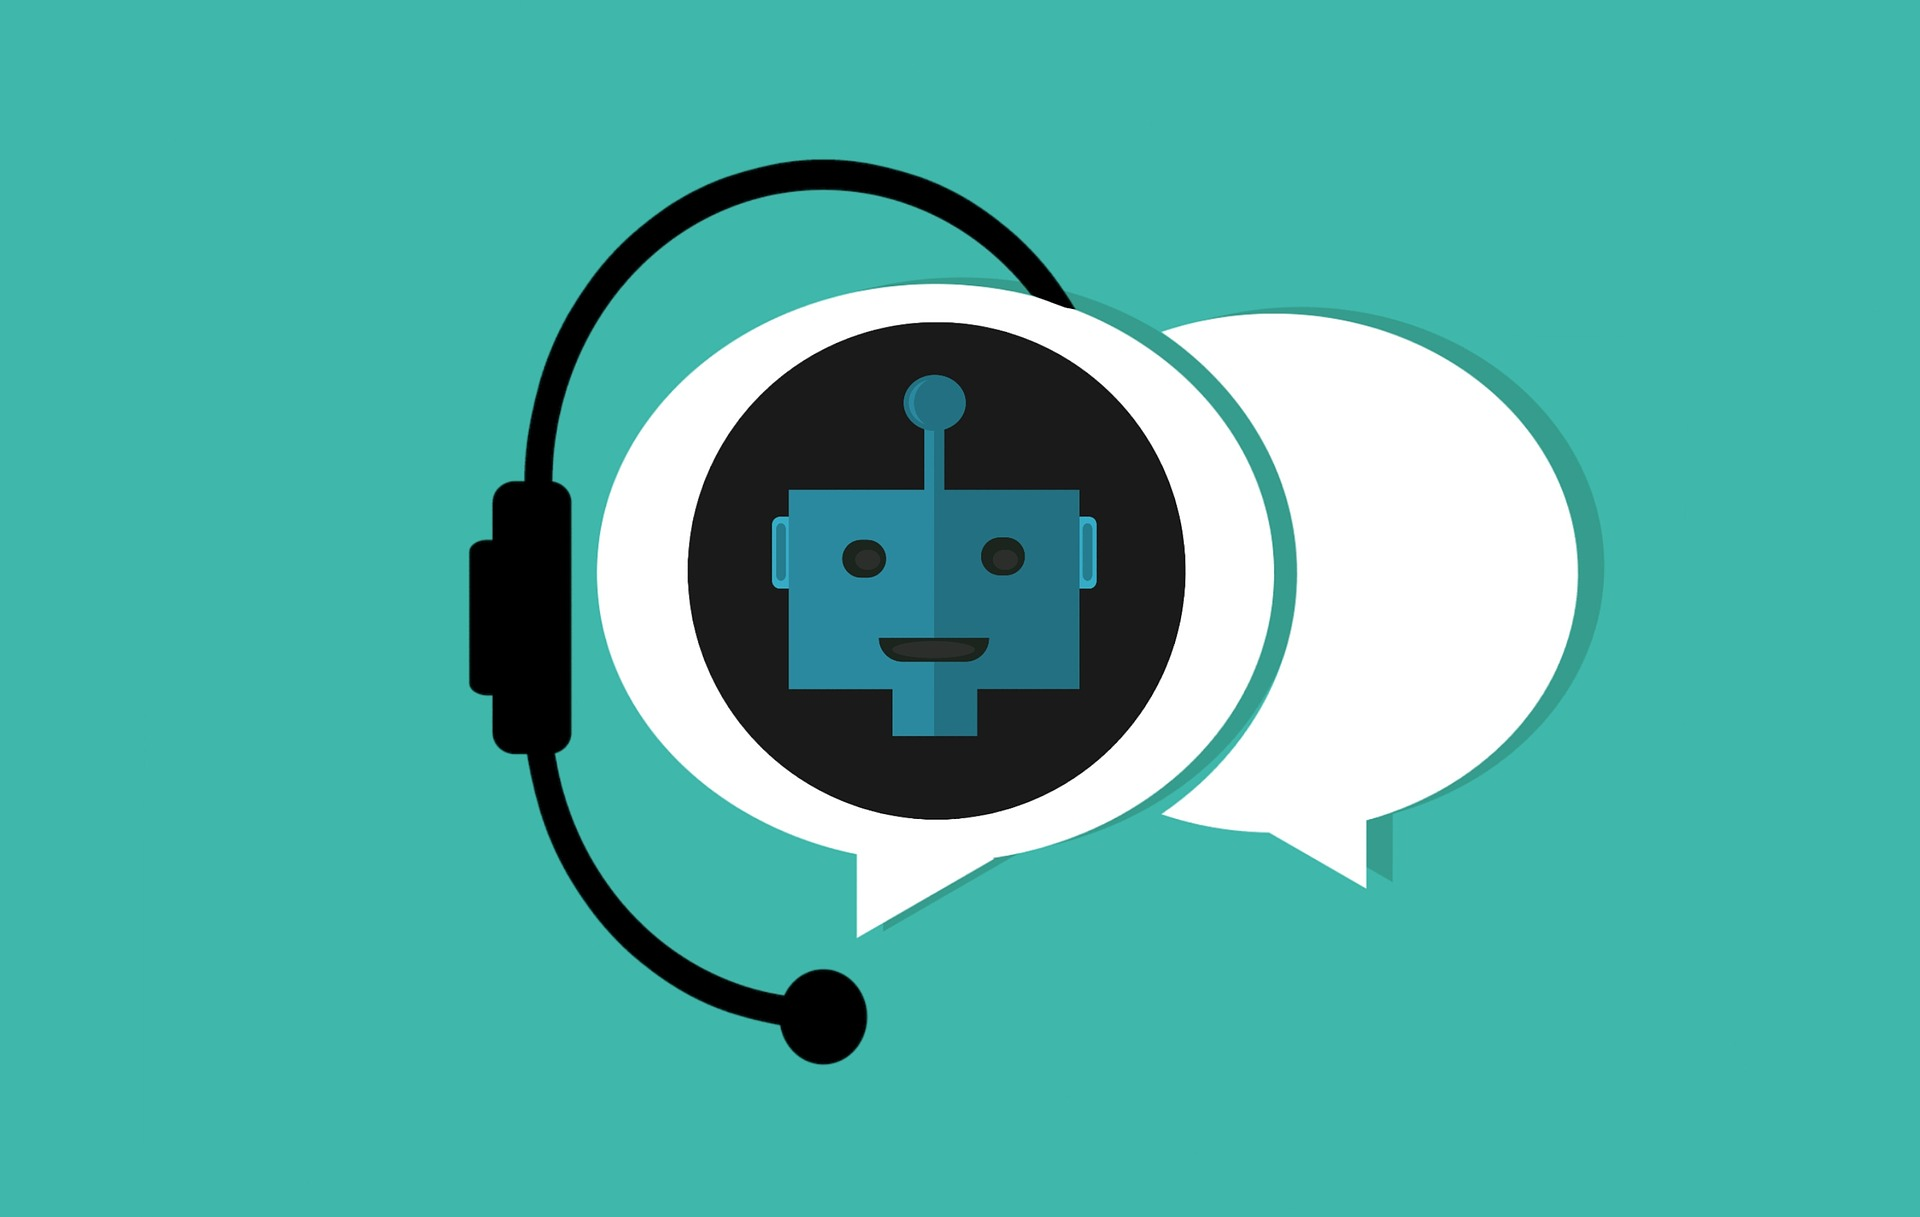 Image of a chatbot with a headset